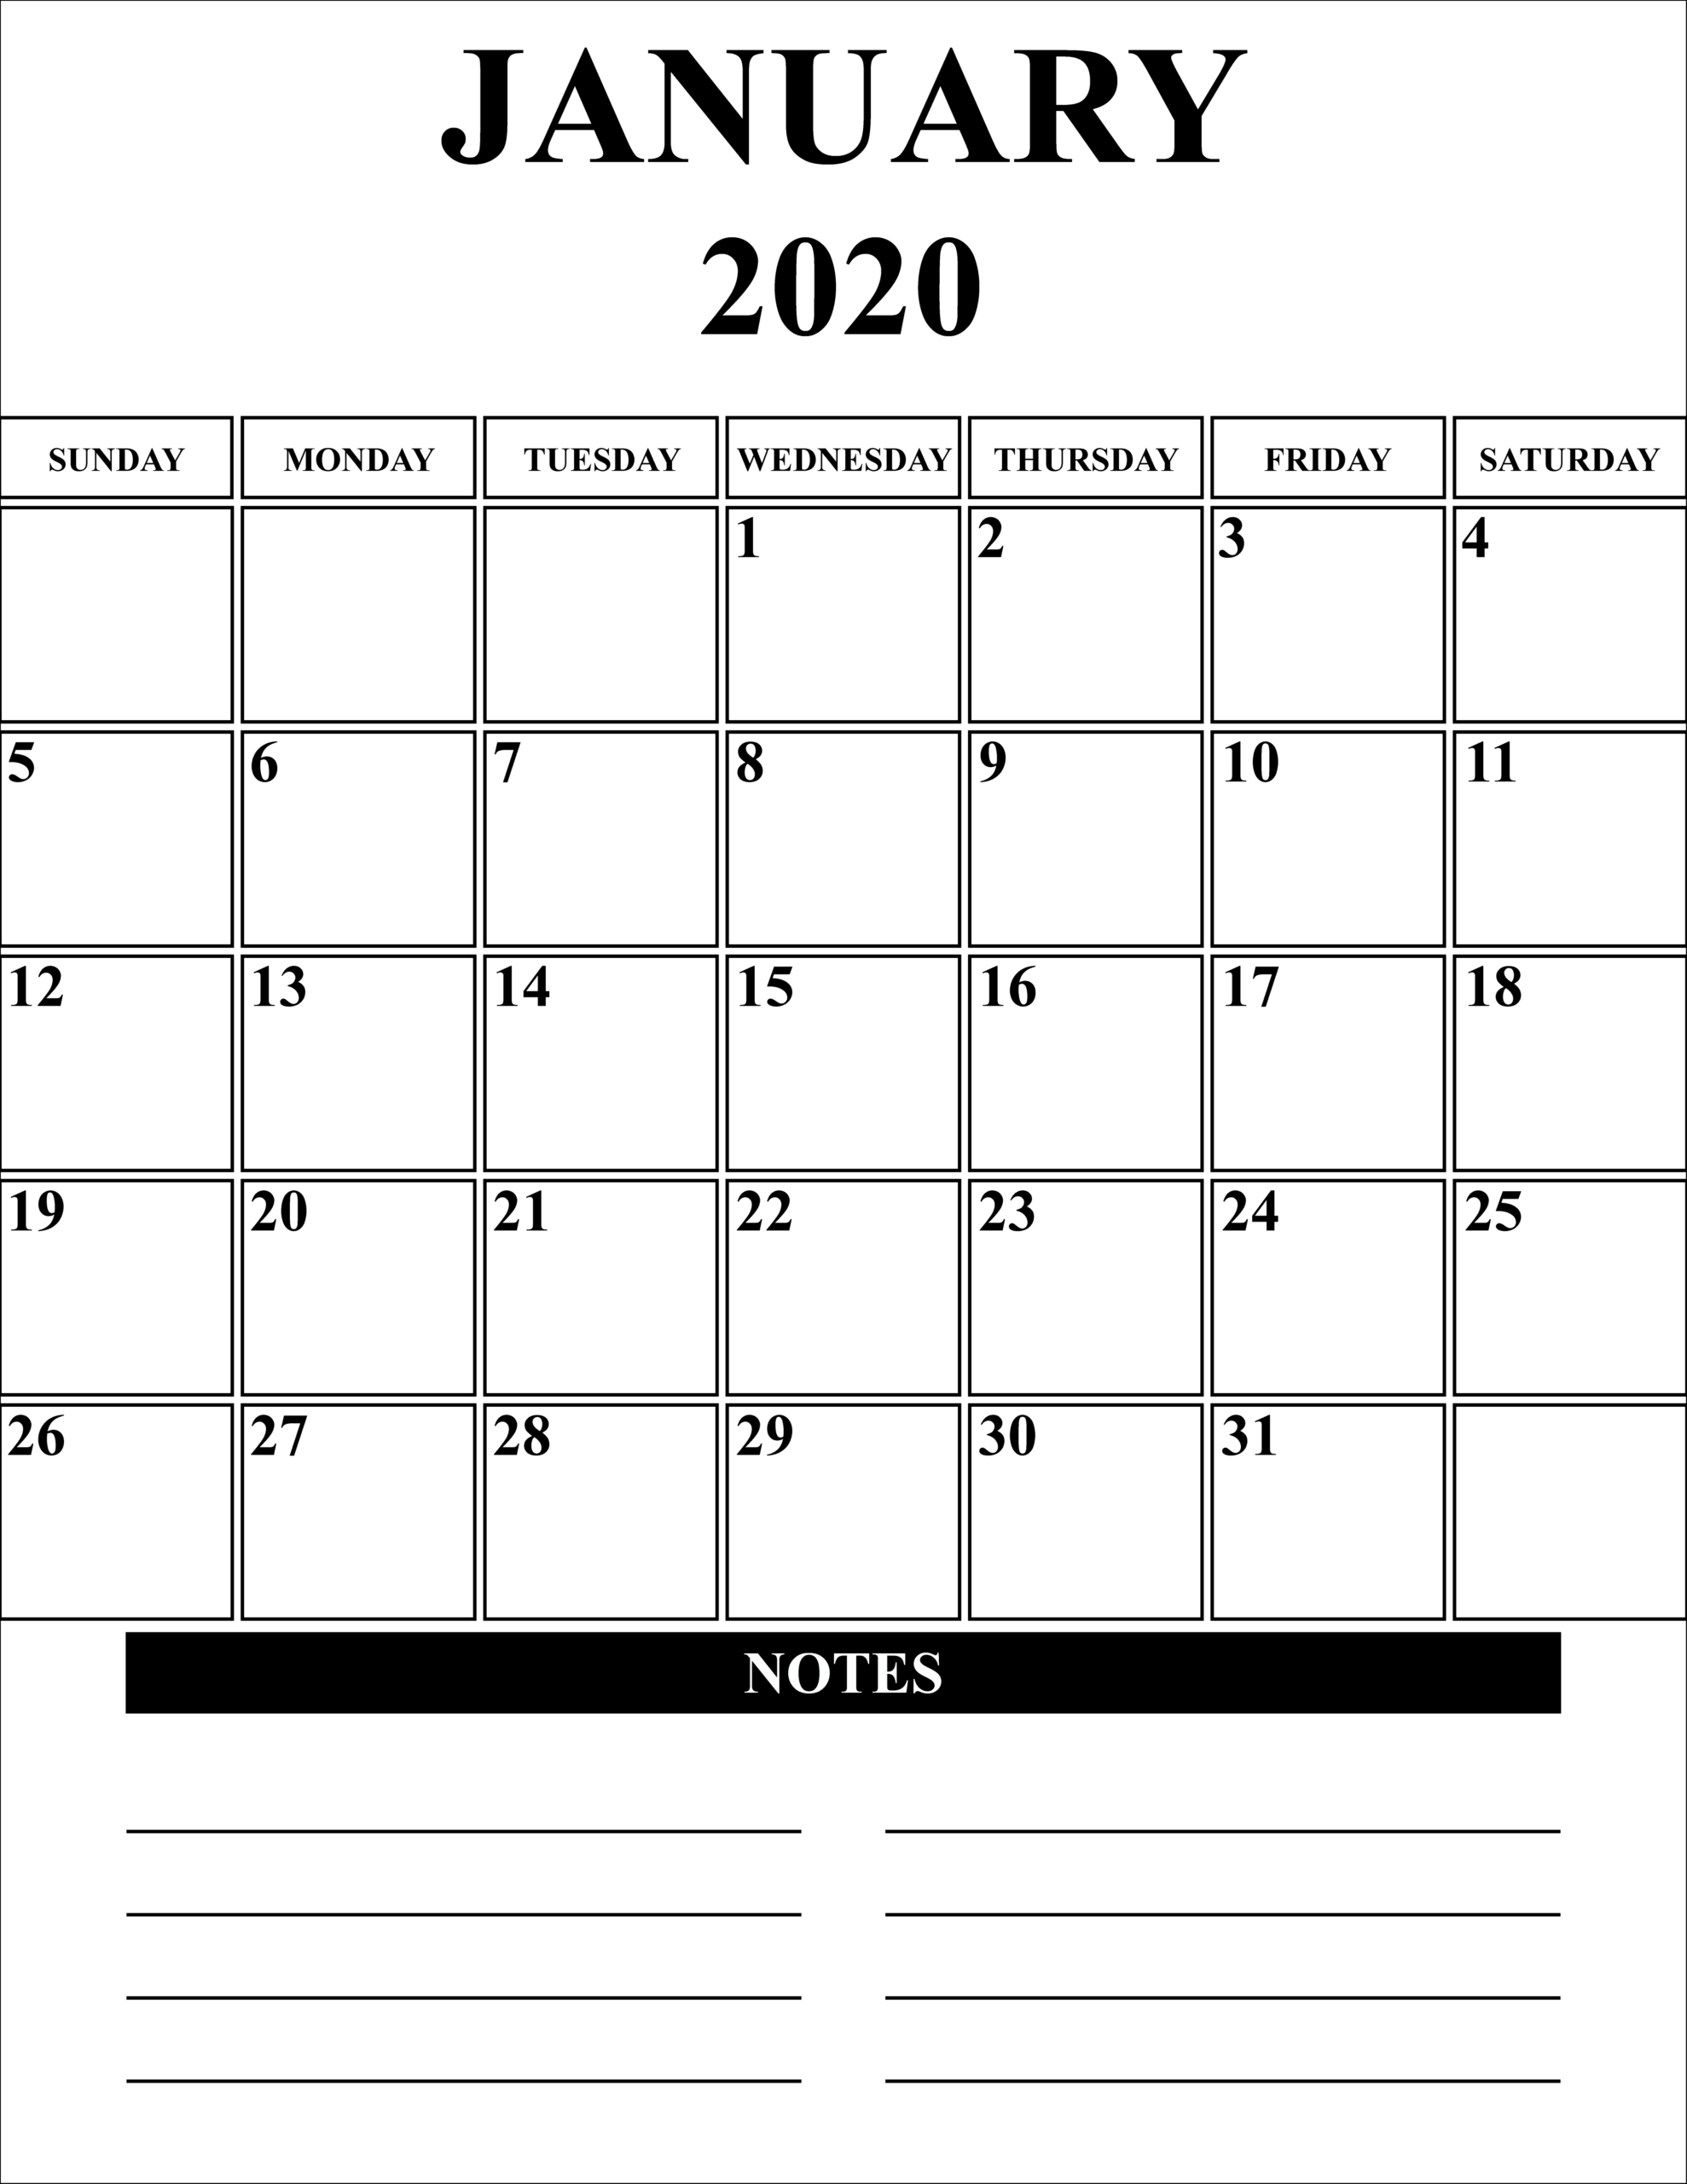 Outlook 2020 Calendar Printable | Example Calendar Printable throughout Blank Monthly Calendar Portrait